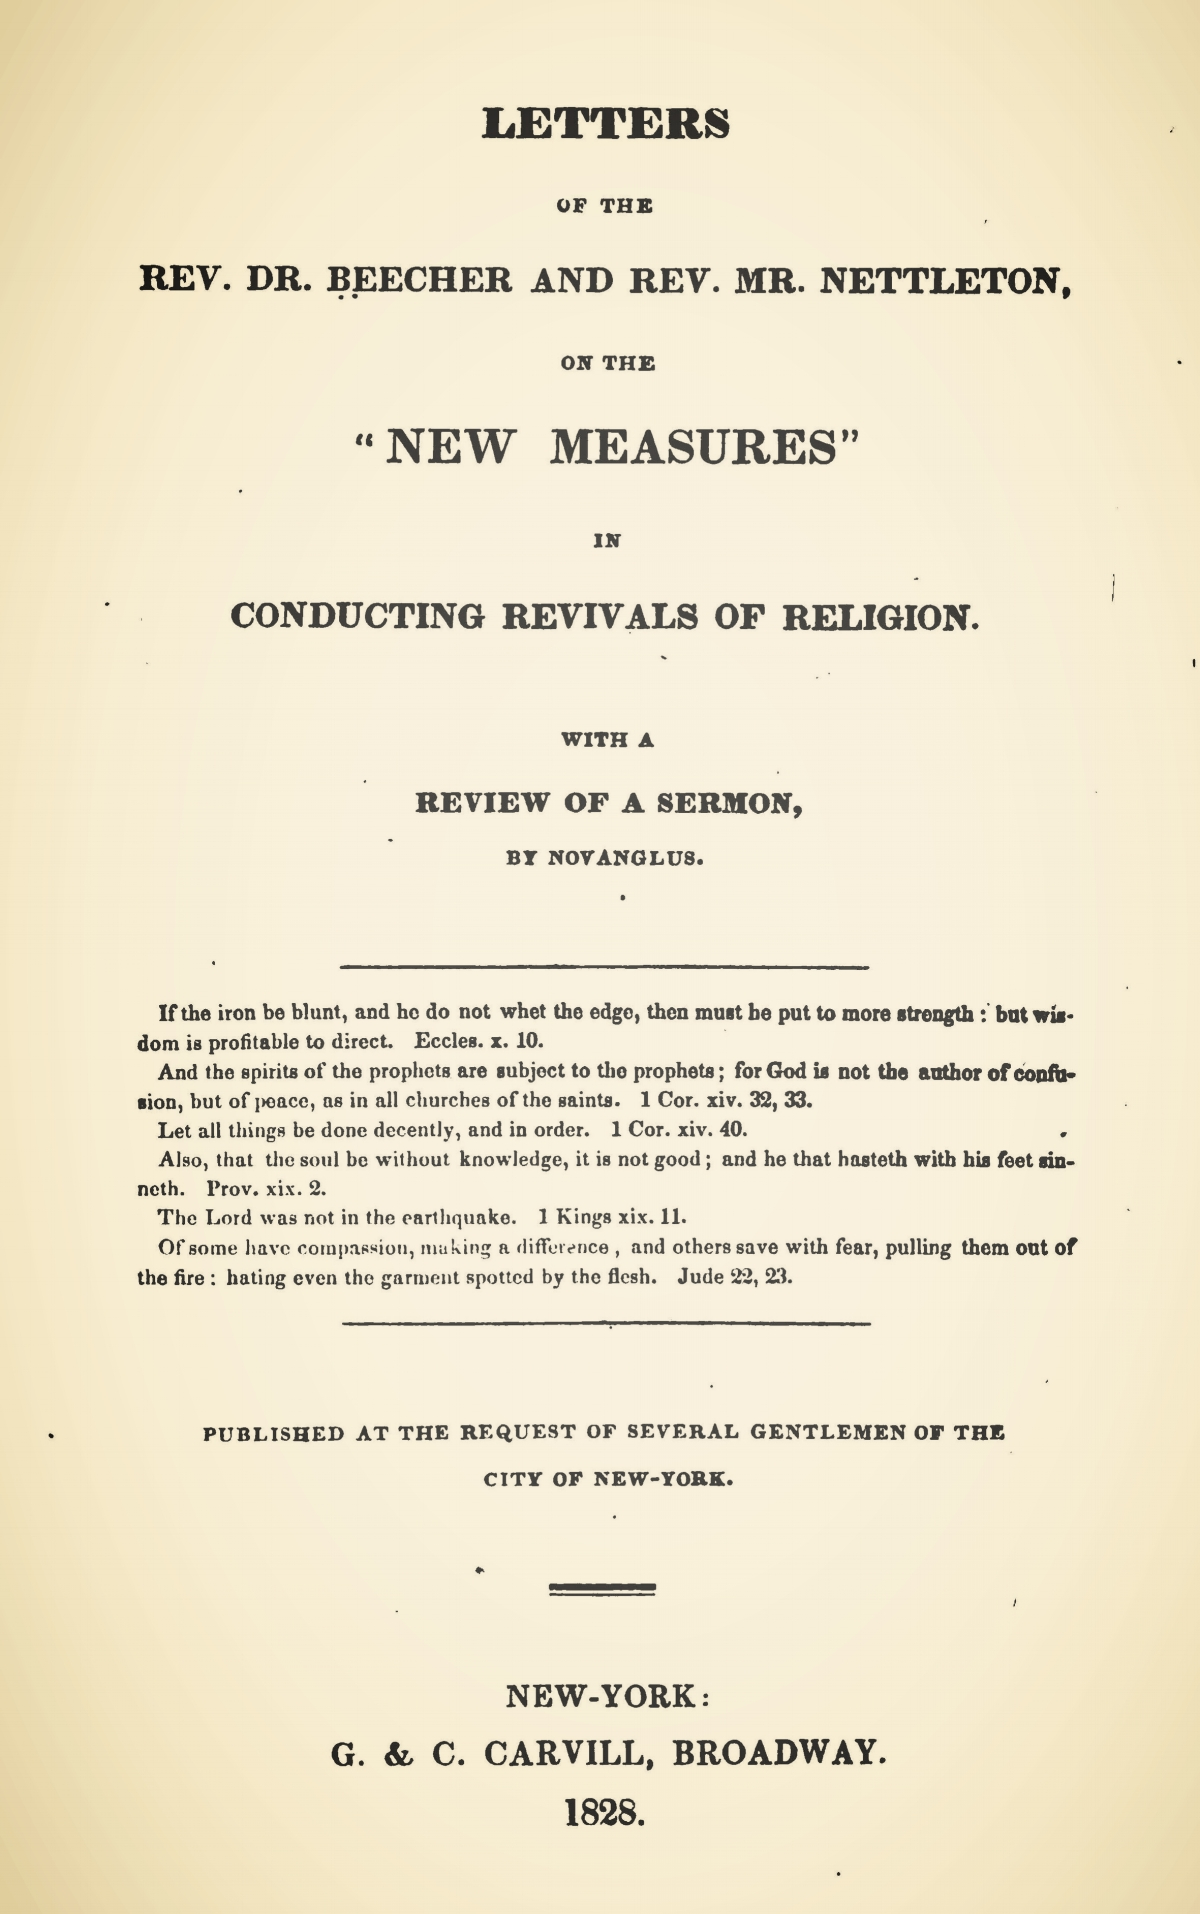 Beecher, Lyman, Letters of the Rev. Dr. Beecher and Rev. Mr. Nettleton, on the New Measures Title Page.jpg